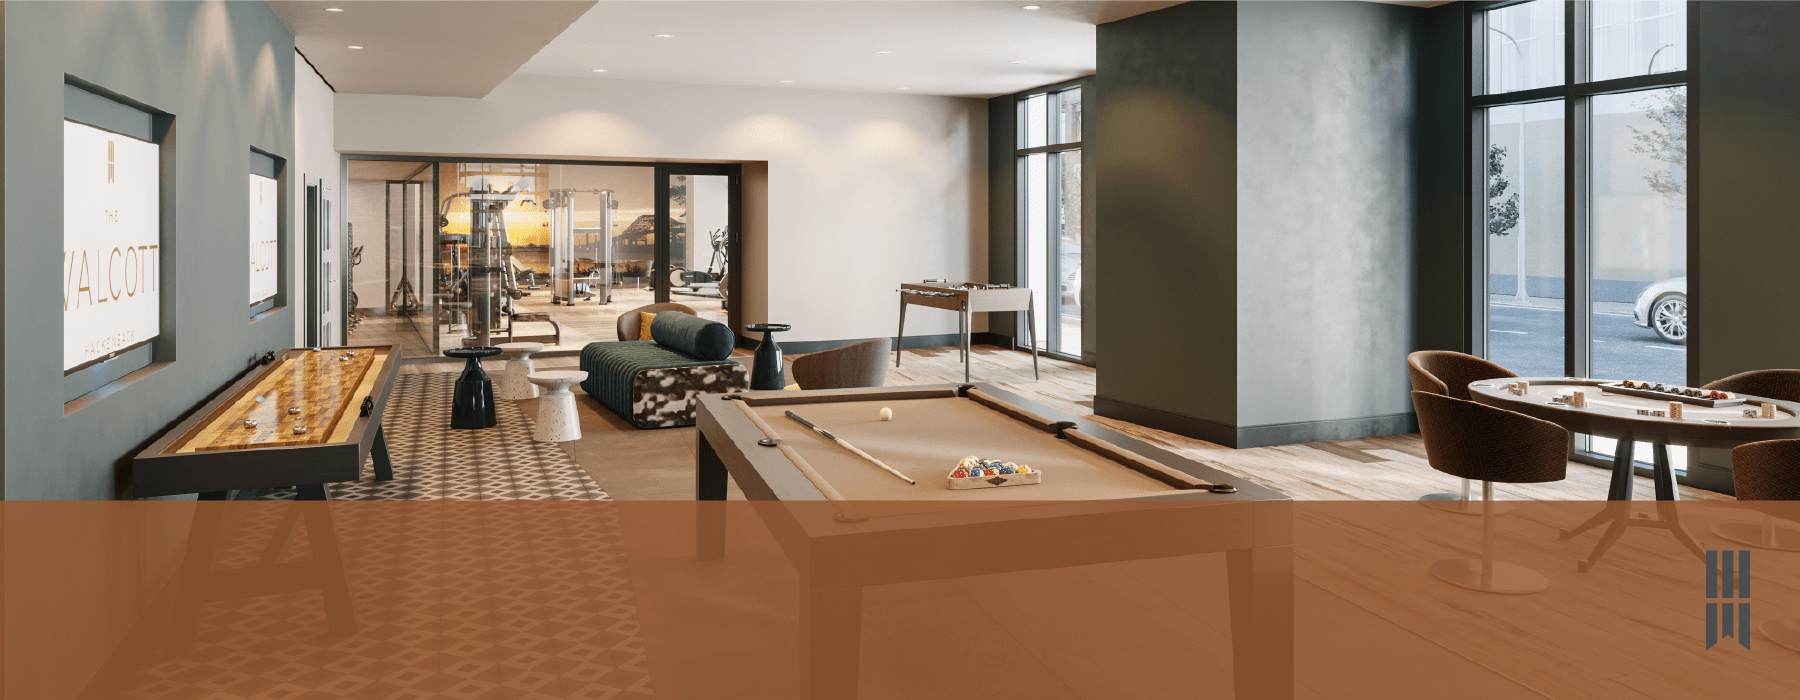 game room with pool table, shuffleboard, seating and easy access to fitness center